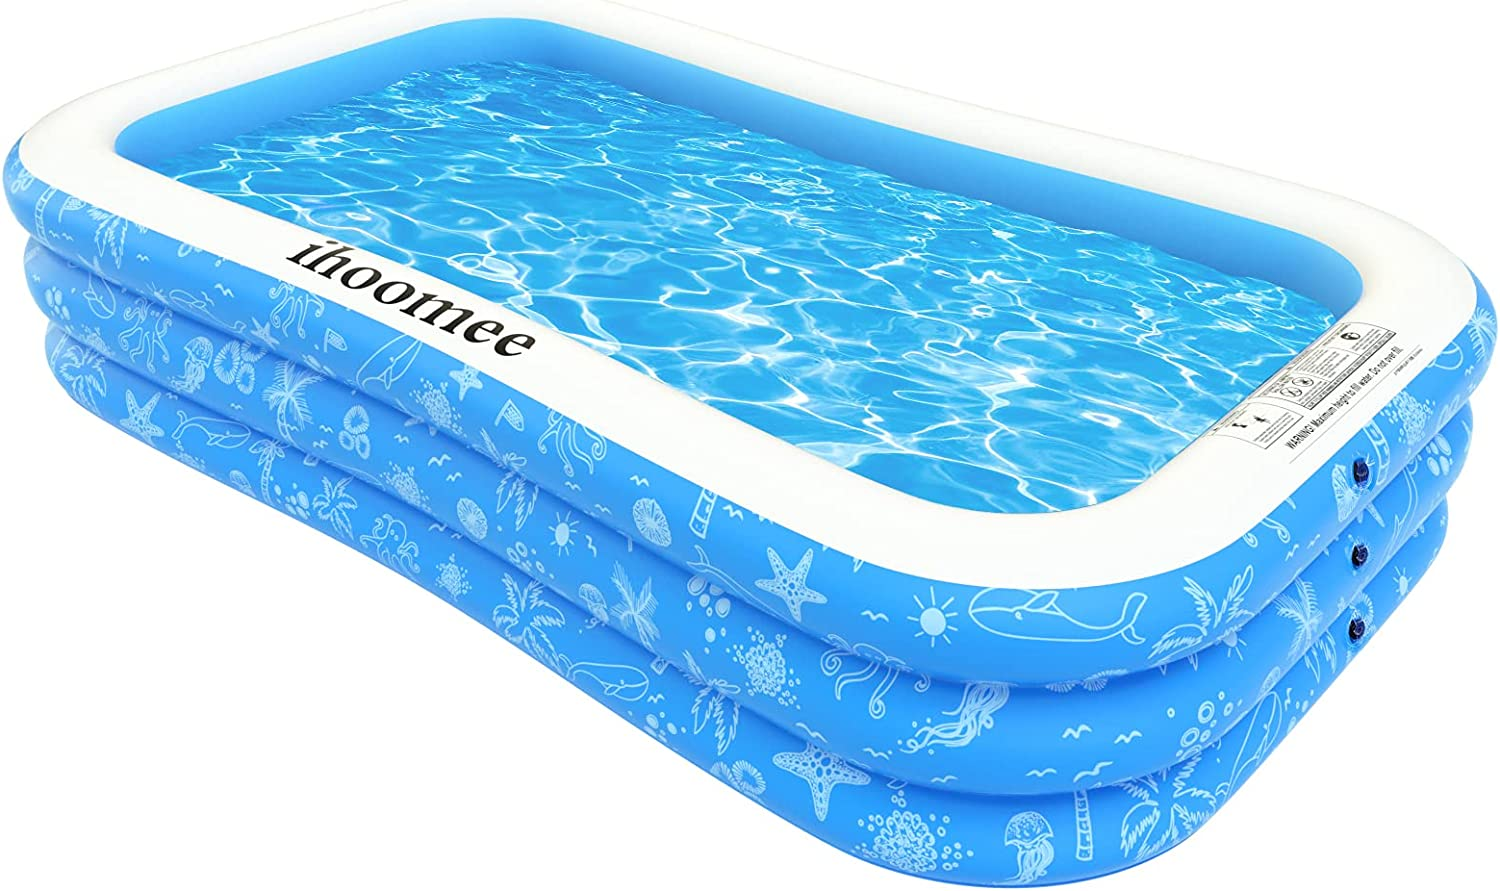 online shop Ihoomee Inflatable Max 76% OFF Swimming Pool 118